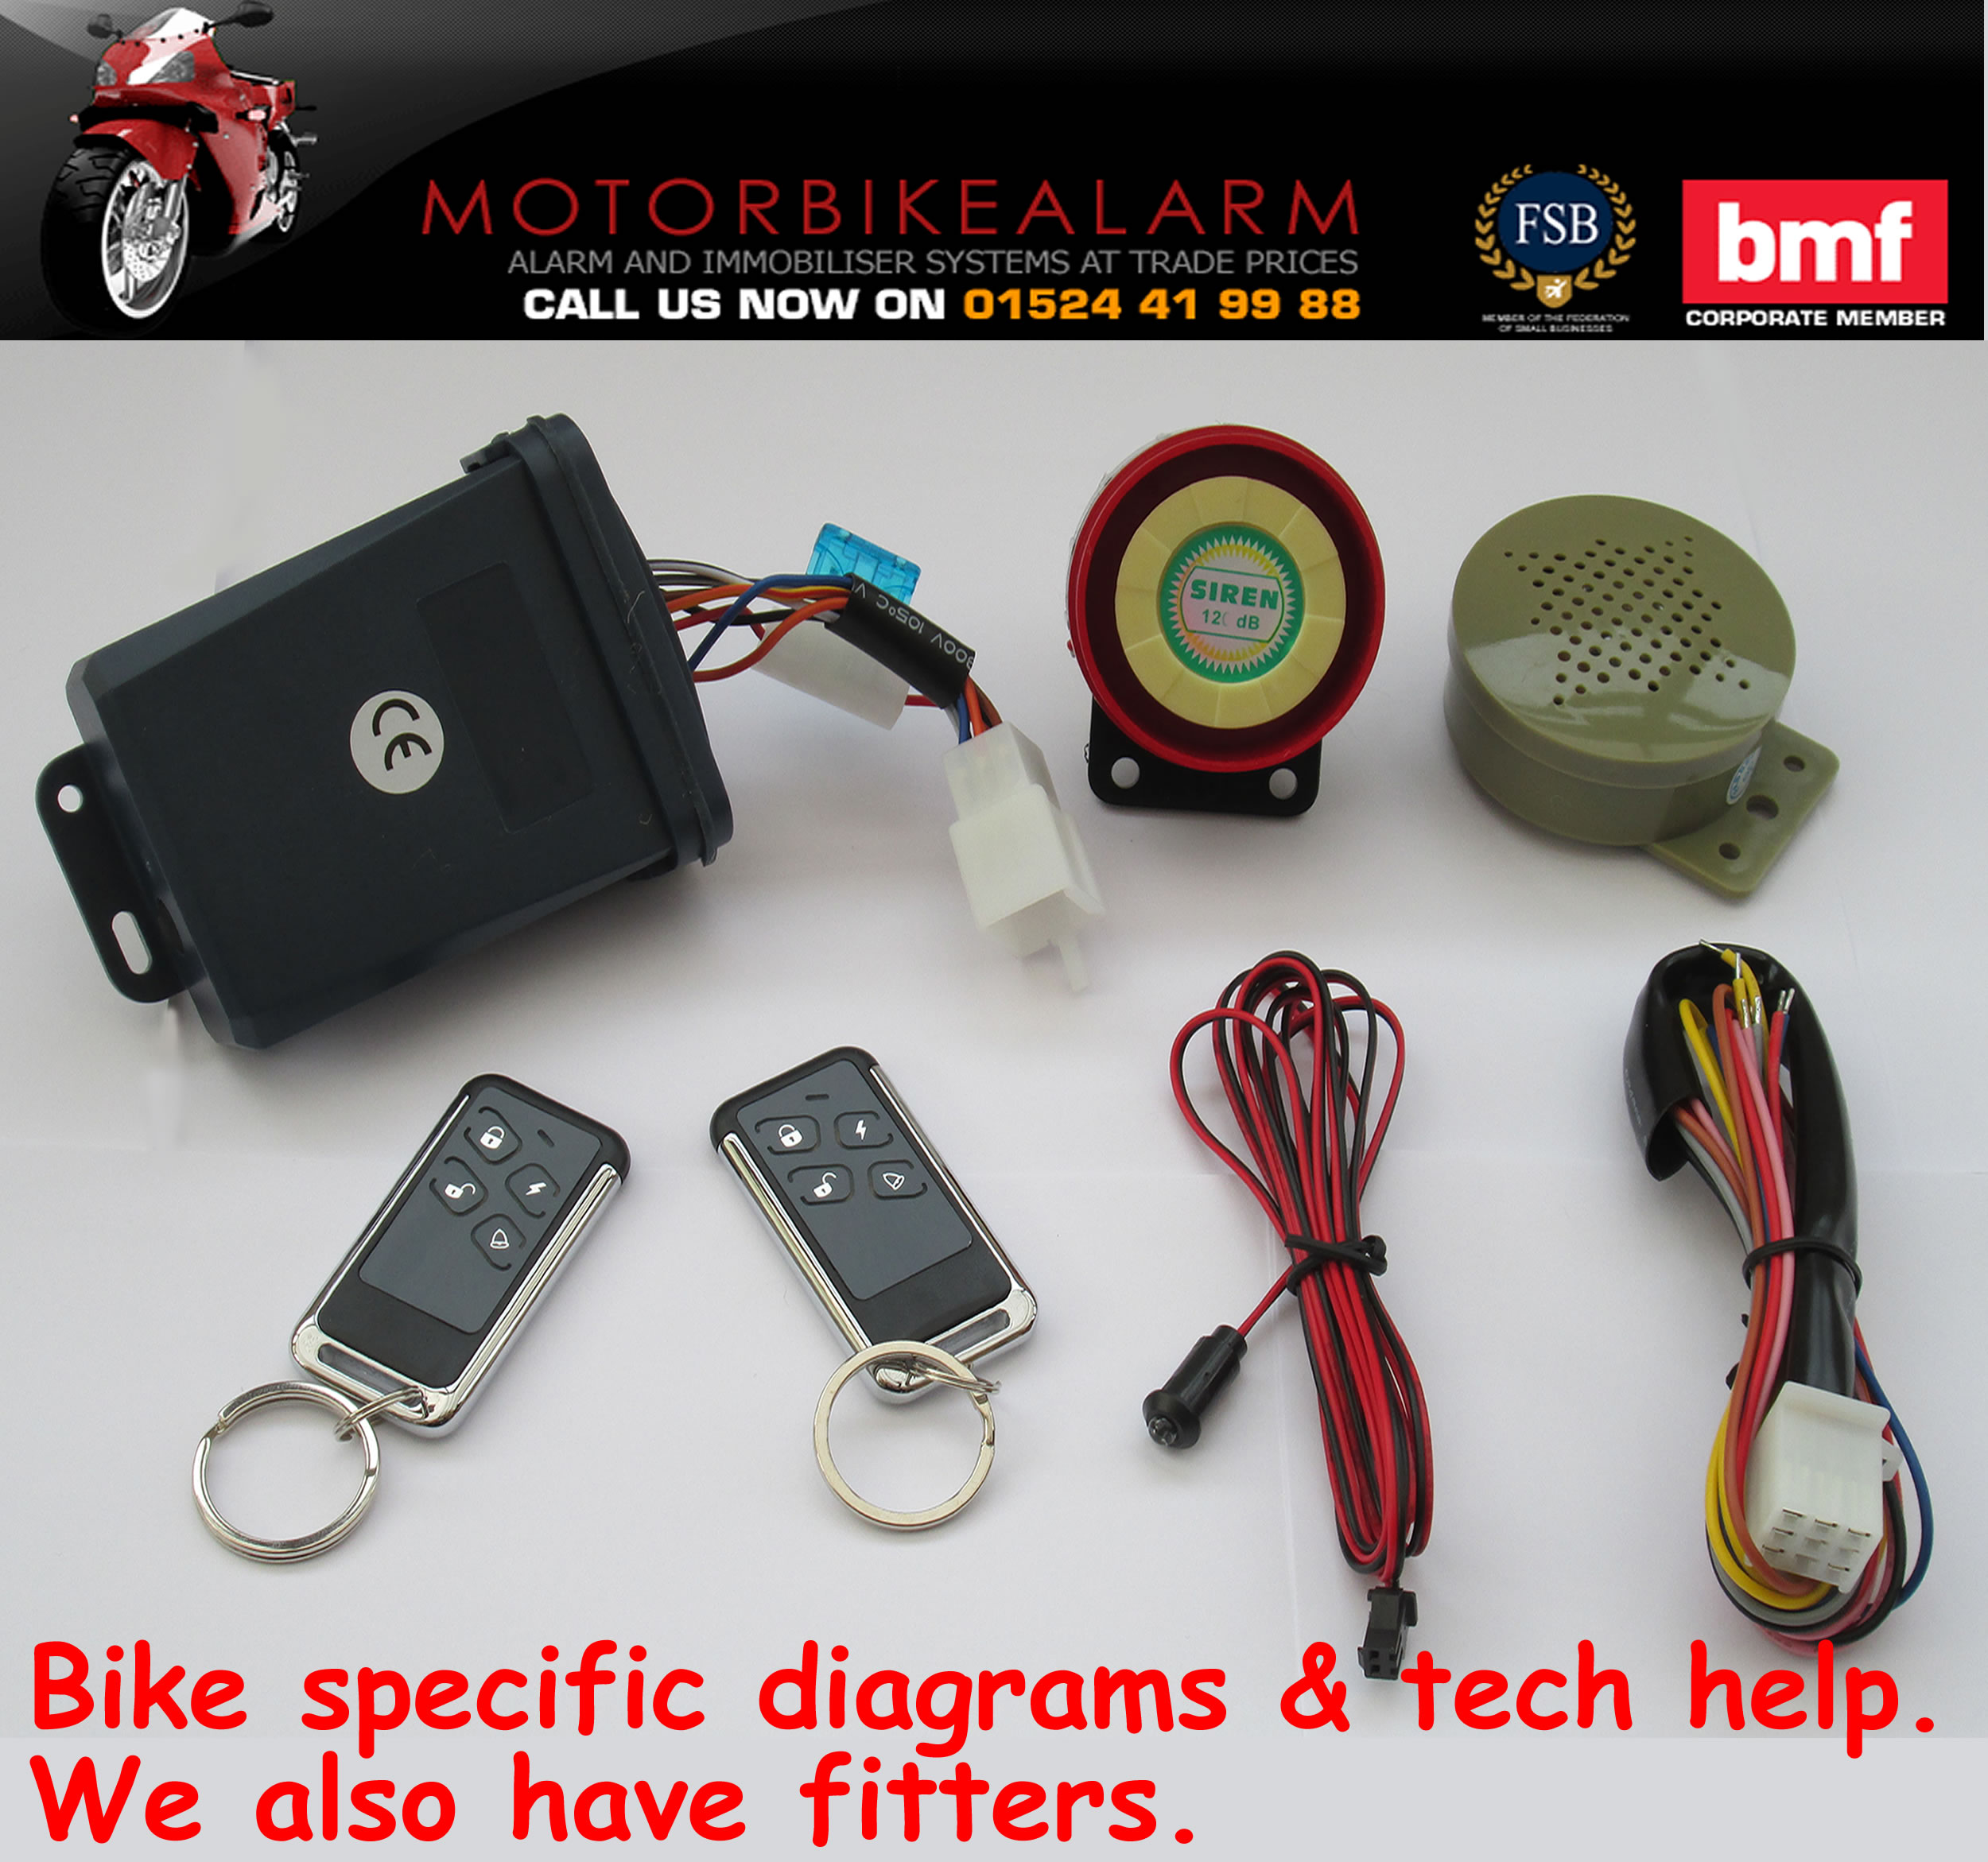 c11talkebay ncs c 11 talking motorbike alarm and immobiliser system Burglar Alarm Wiring Diagram at n-0.co